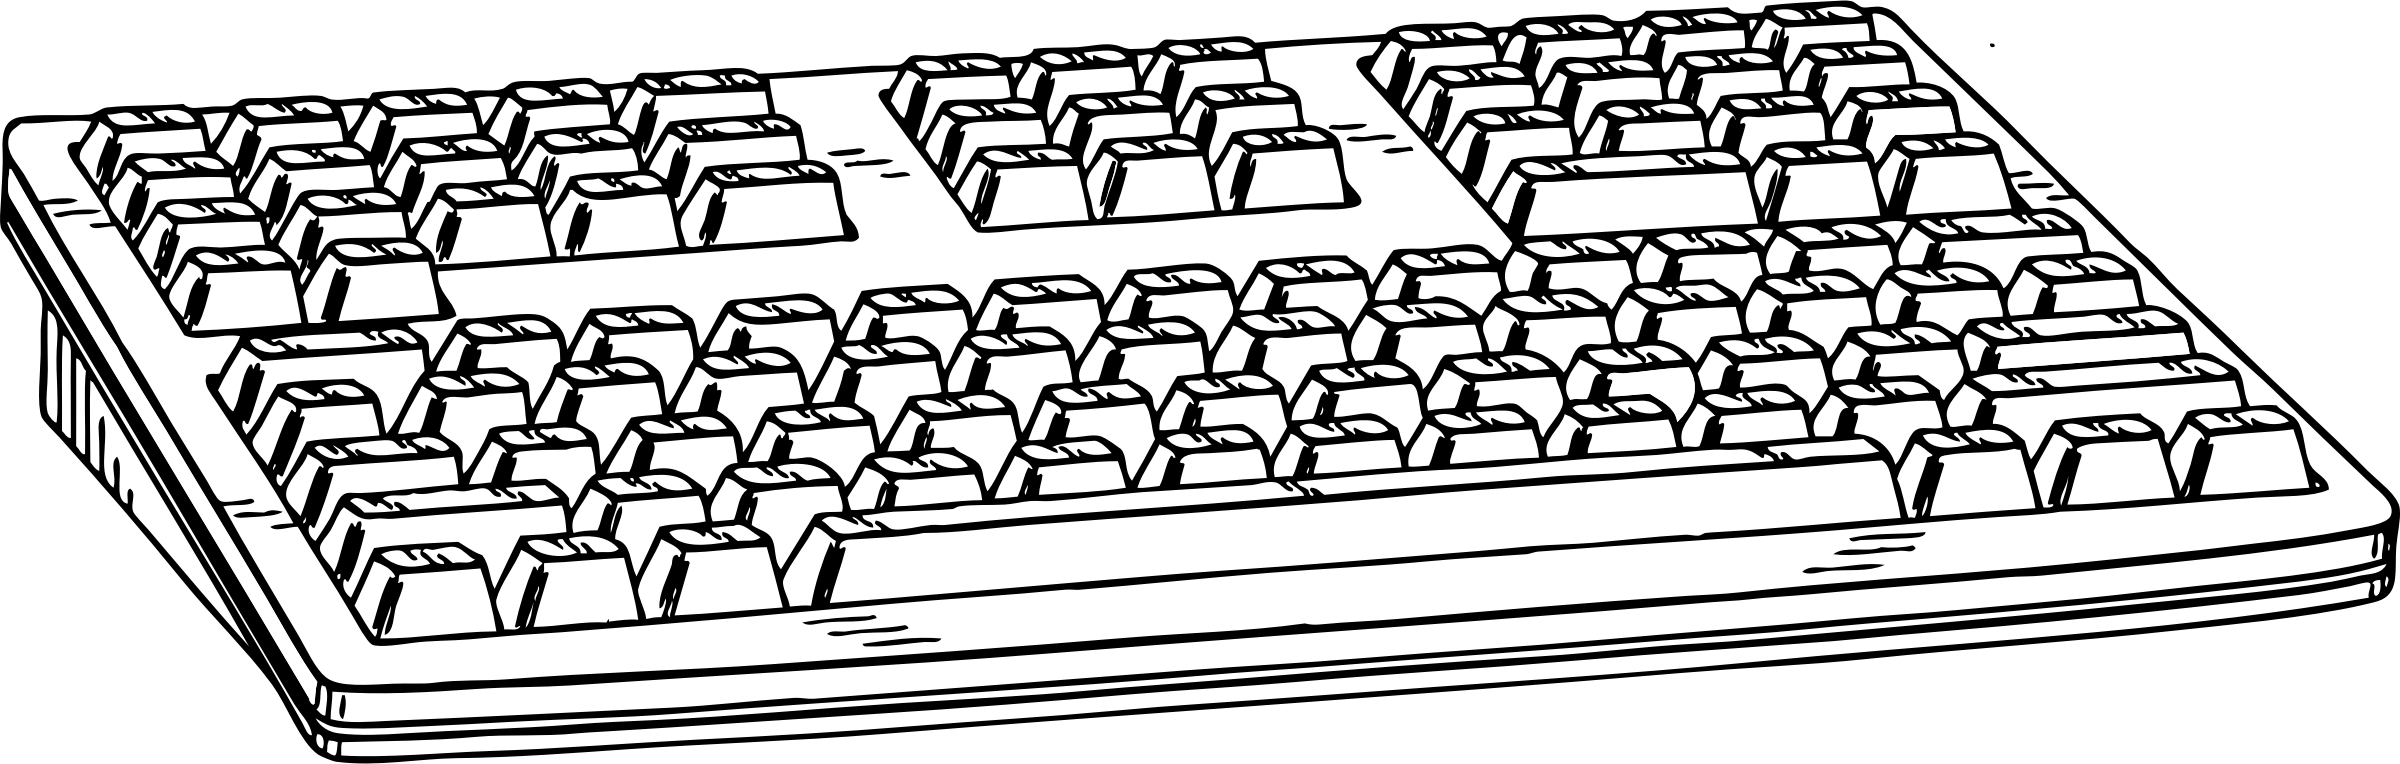 Clipart of computer keyboard vector black and white download Clipart - computer keyboard 1 vector black and white download